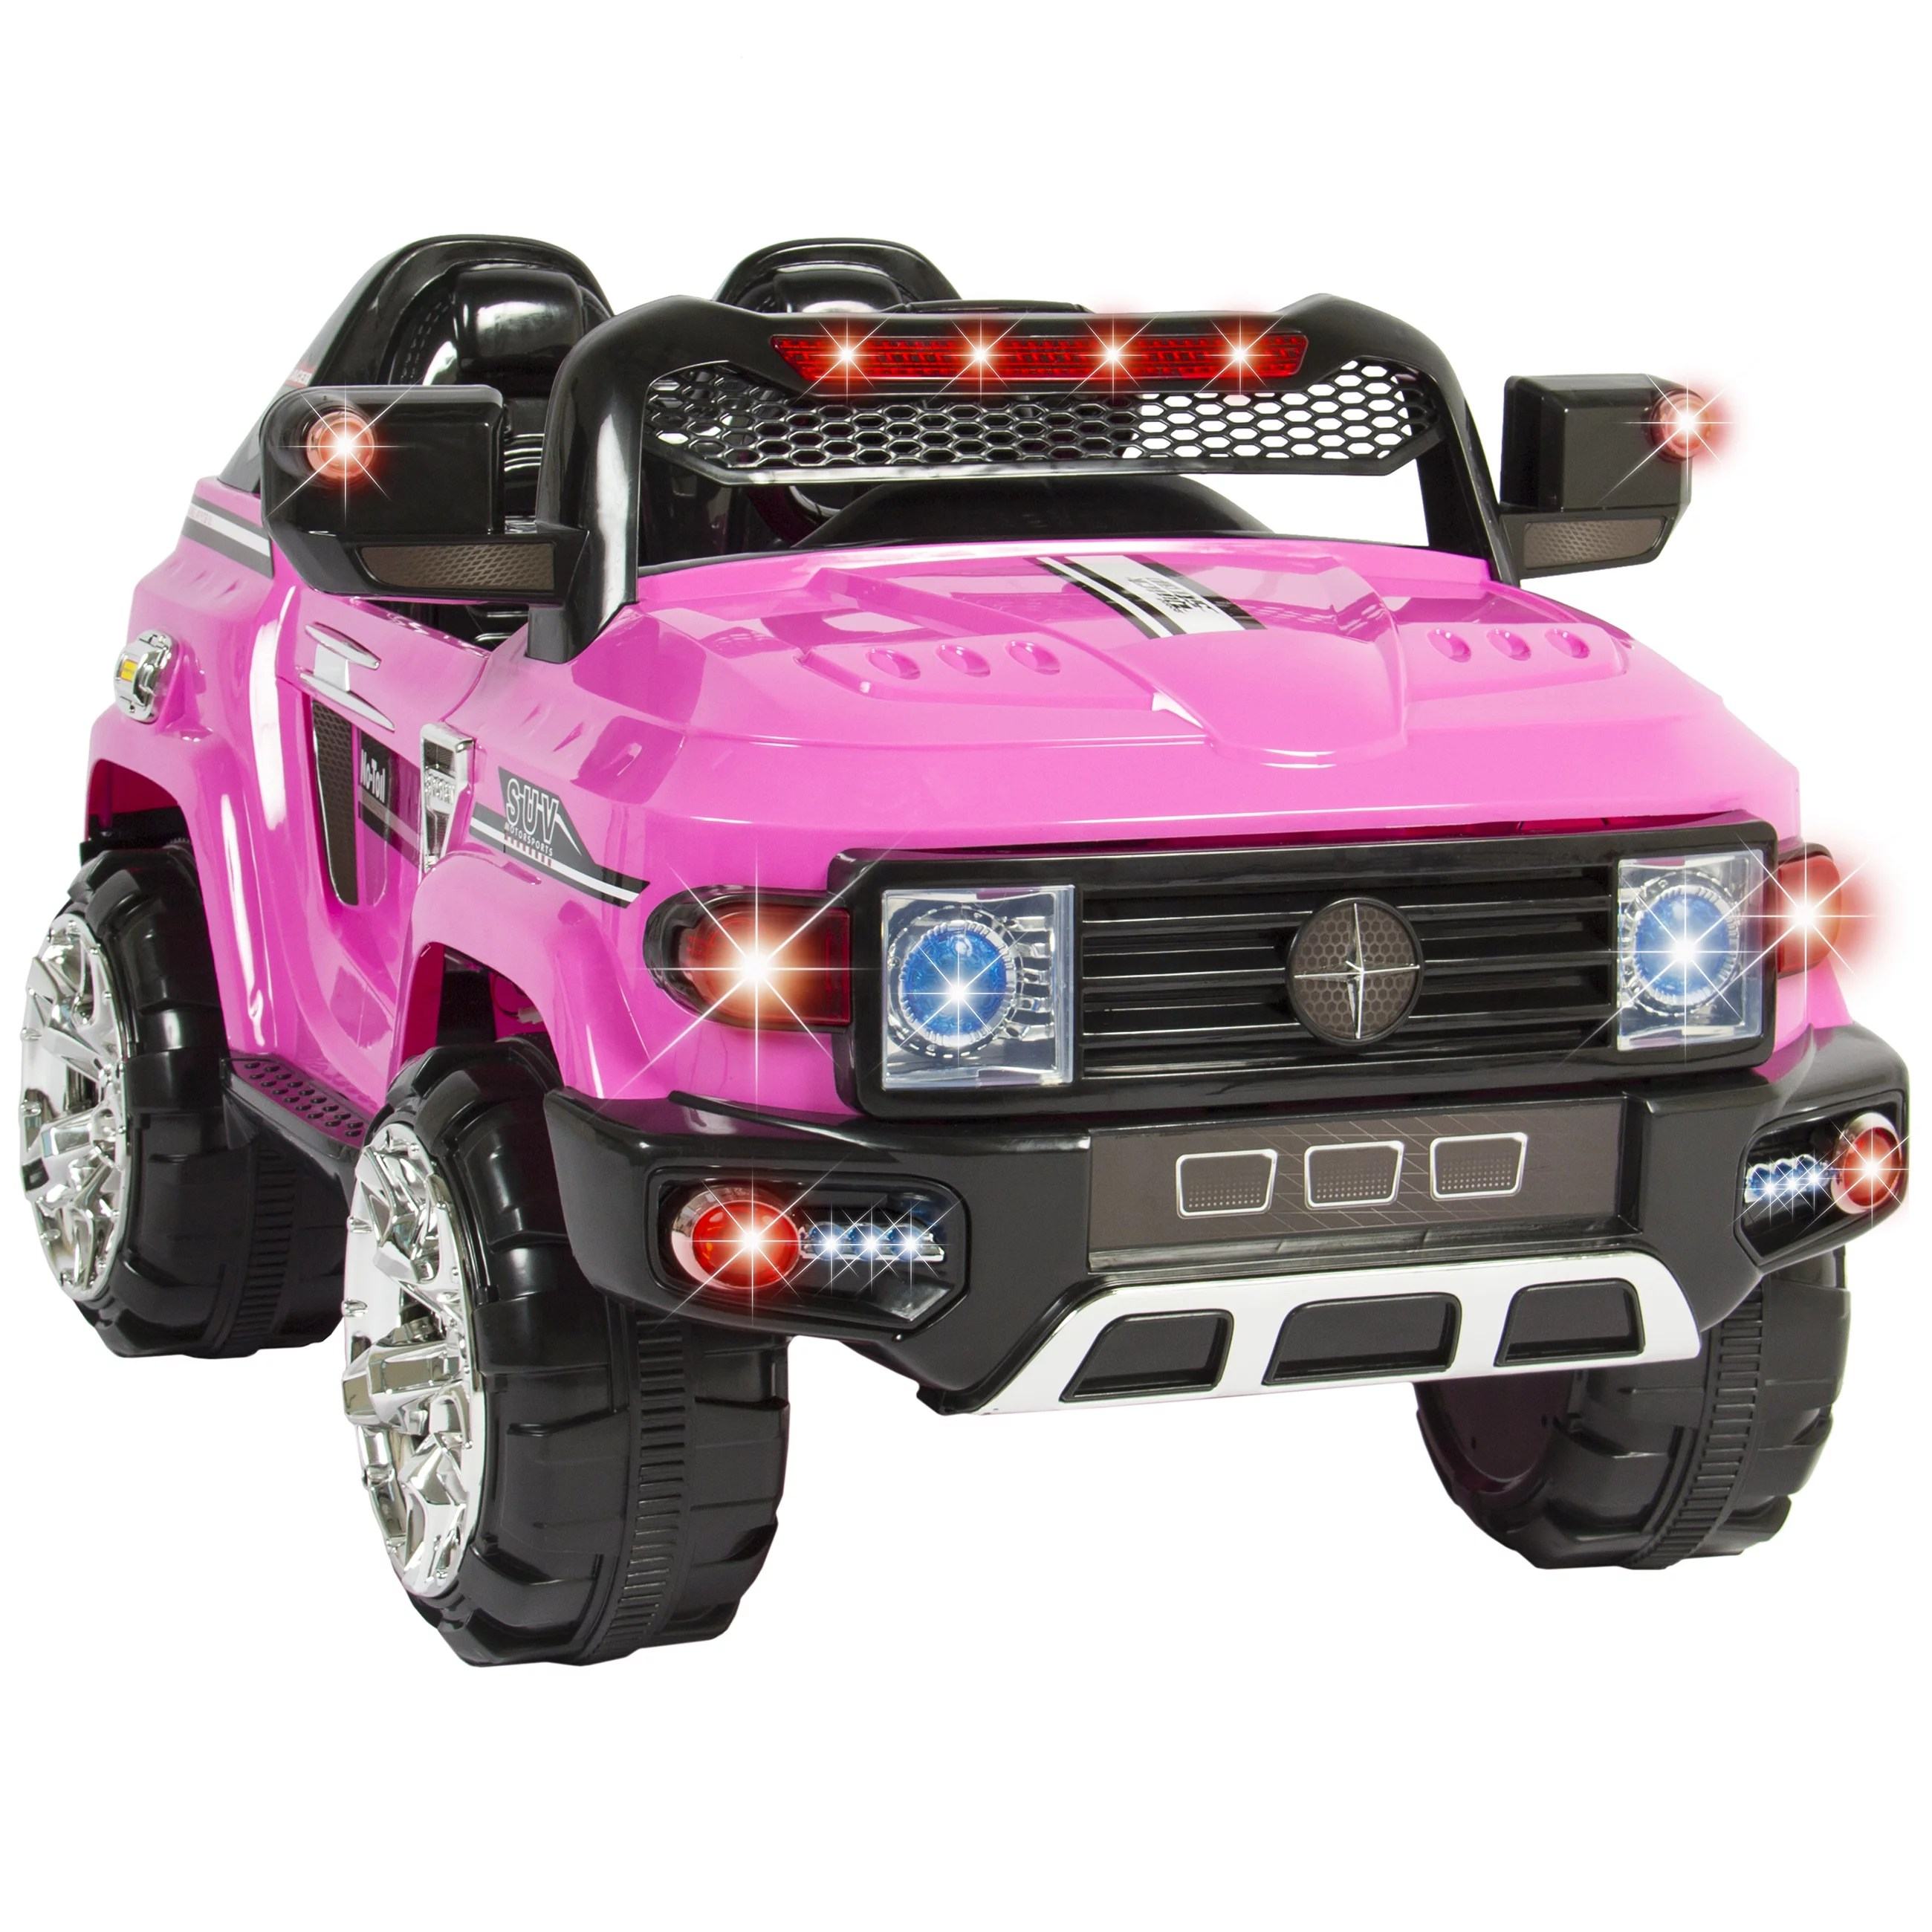 Big W Toy Cars 12v Ride On Car Kids W Mp3 Electric Battery Power Remote